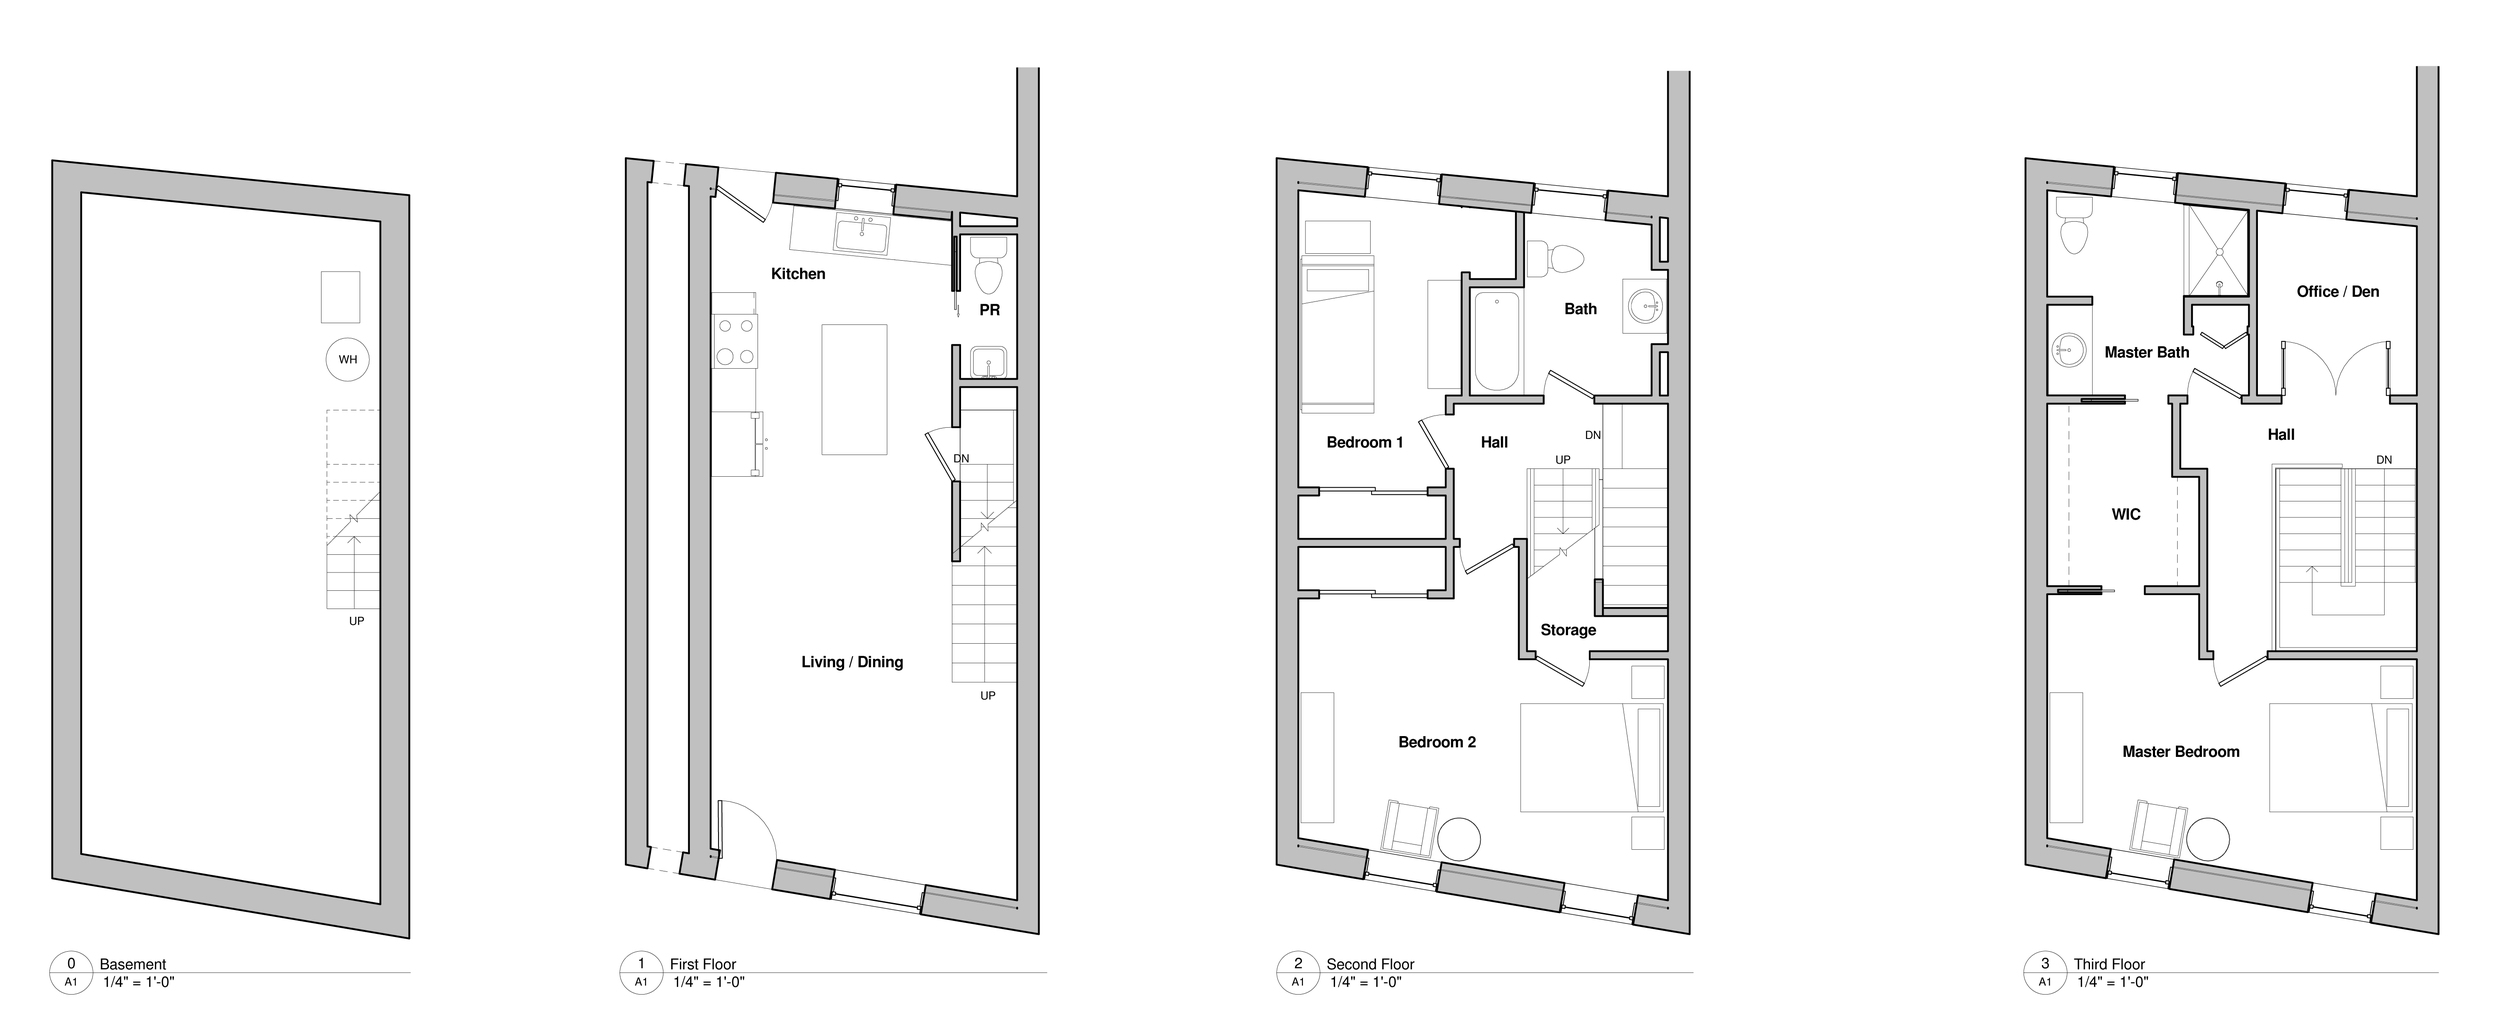 Plans of the finished project